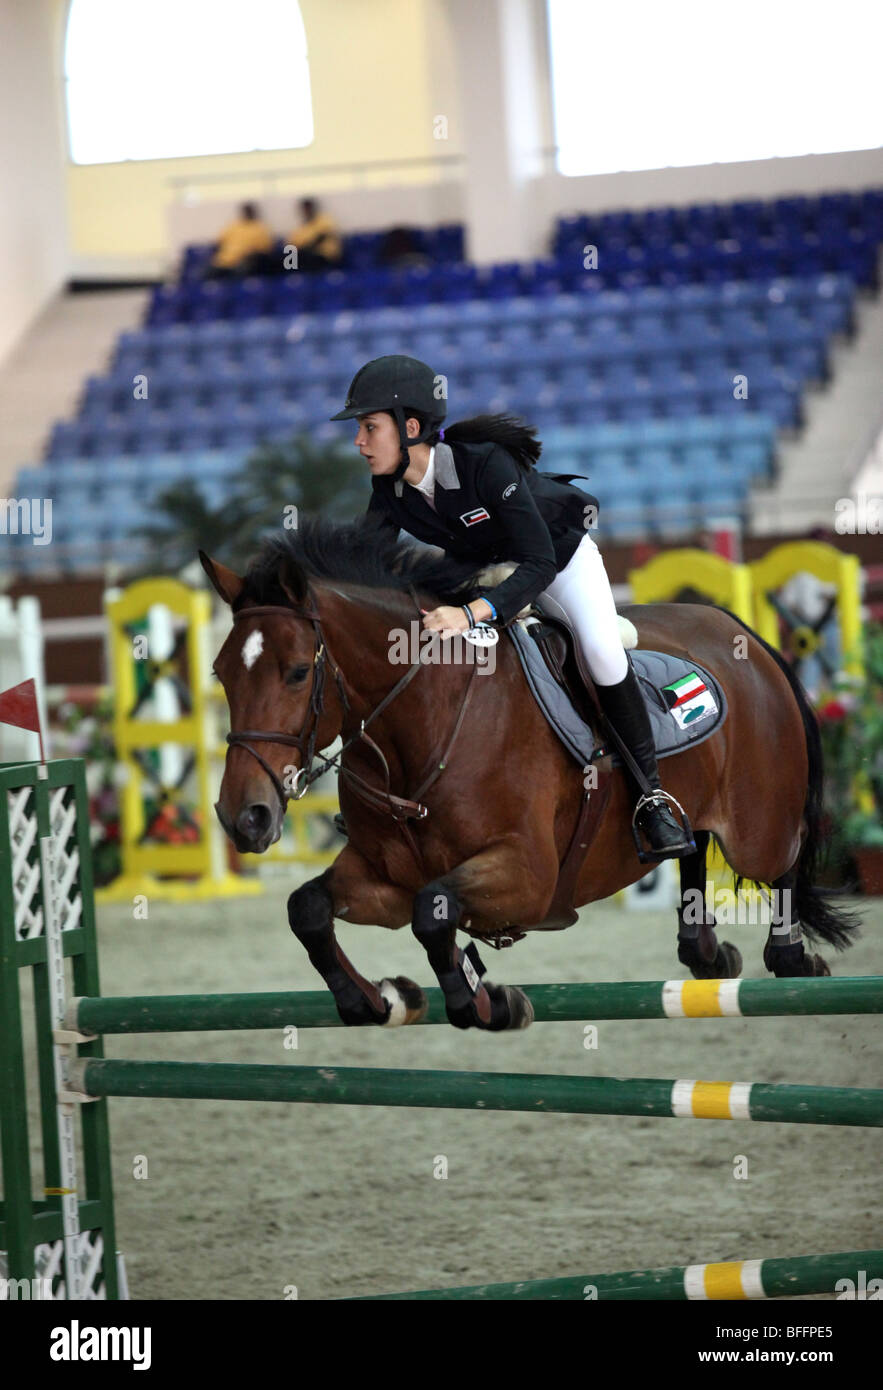 A Kuwaiti woman showjumper in action at an international tournament at QEF's indoor ring in New Rayyan, Doha, - Stock Image